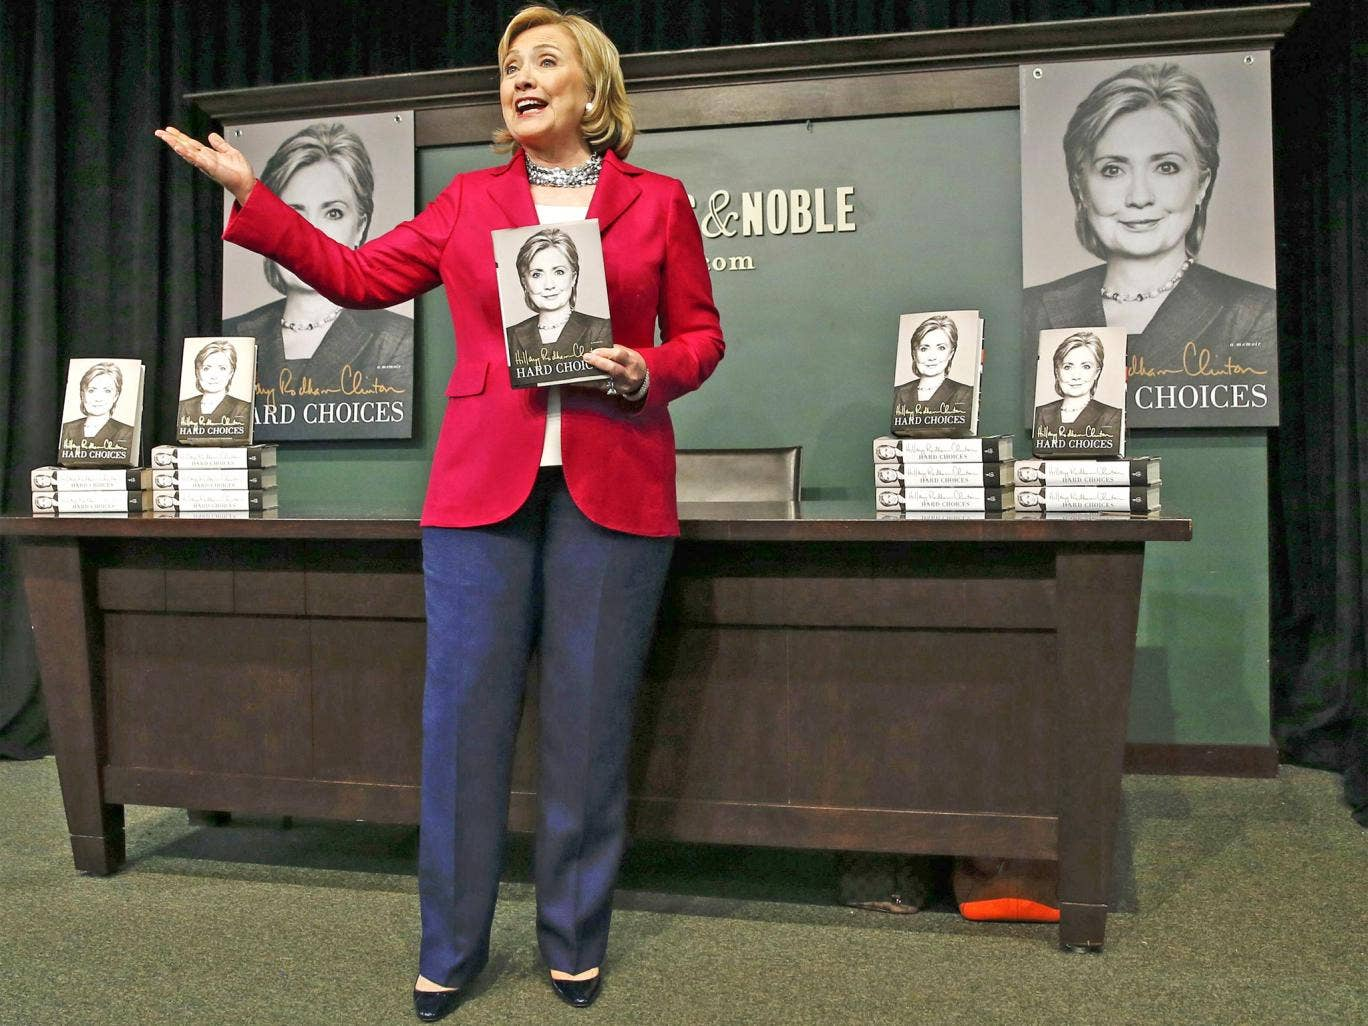 Hillary Clinton was met with enthusiastic supporters excited for a potential campaign at Barnes & Noble in Union Square, New York